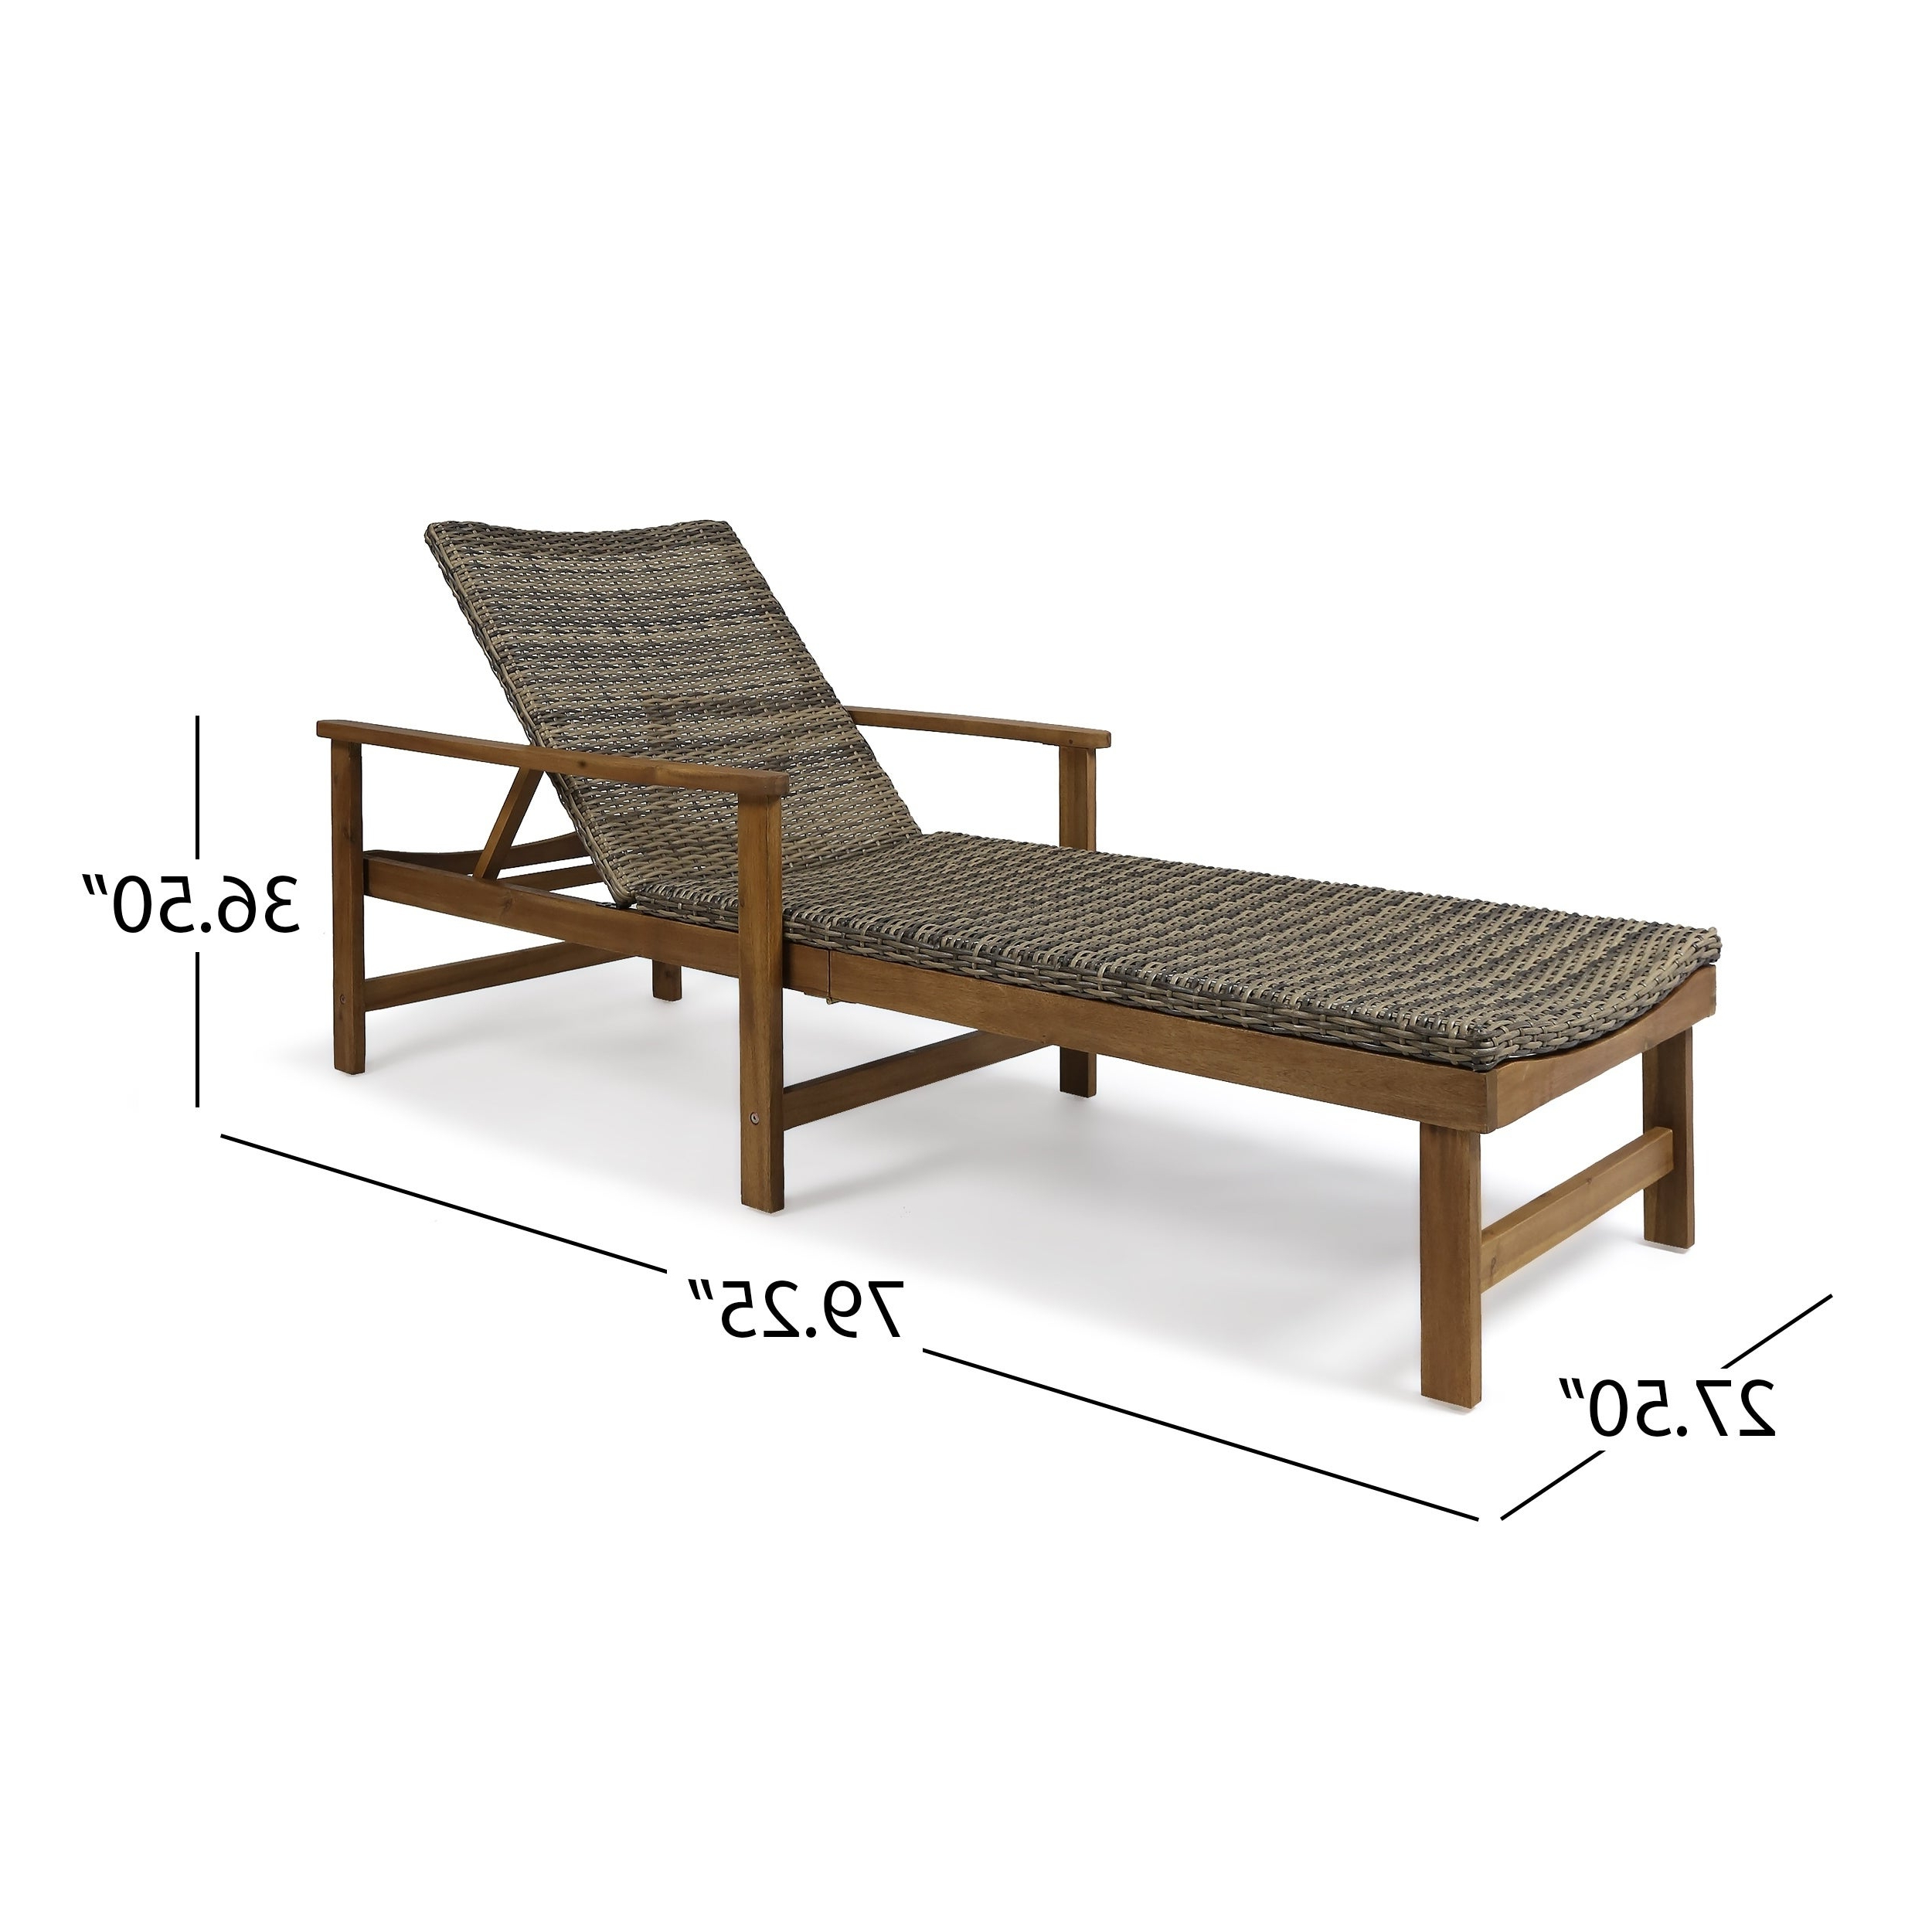 Popular Hampton Outdoor Chaise Lounges Acacia Wood And Wicker (Set Of 2) Christopher Knight Home Within Outdoor 3 Piece Acacia Wood Chaise Lounge Sets (Gallery 25 of 25)